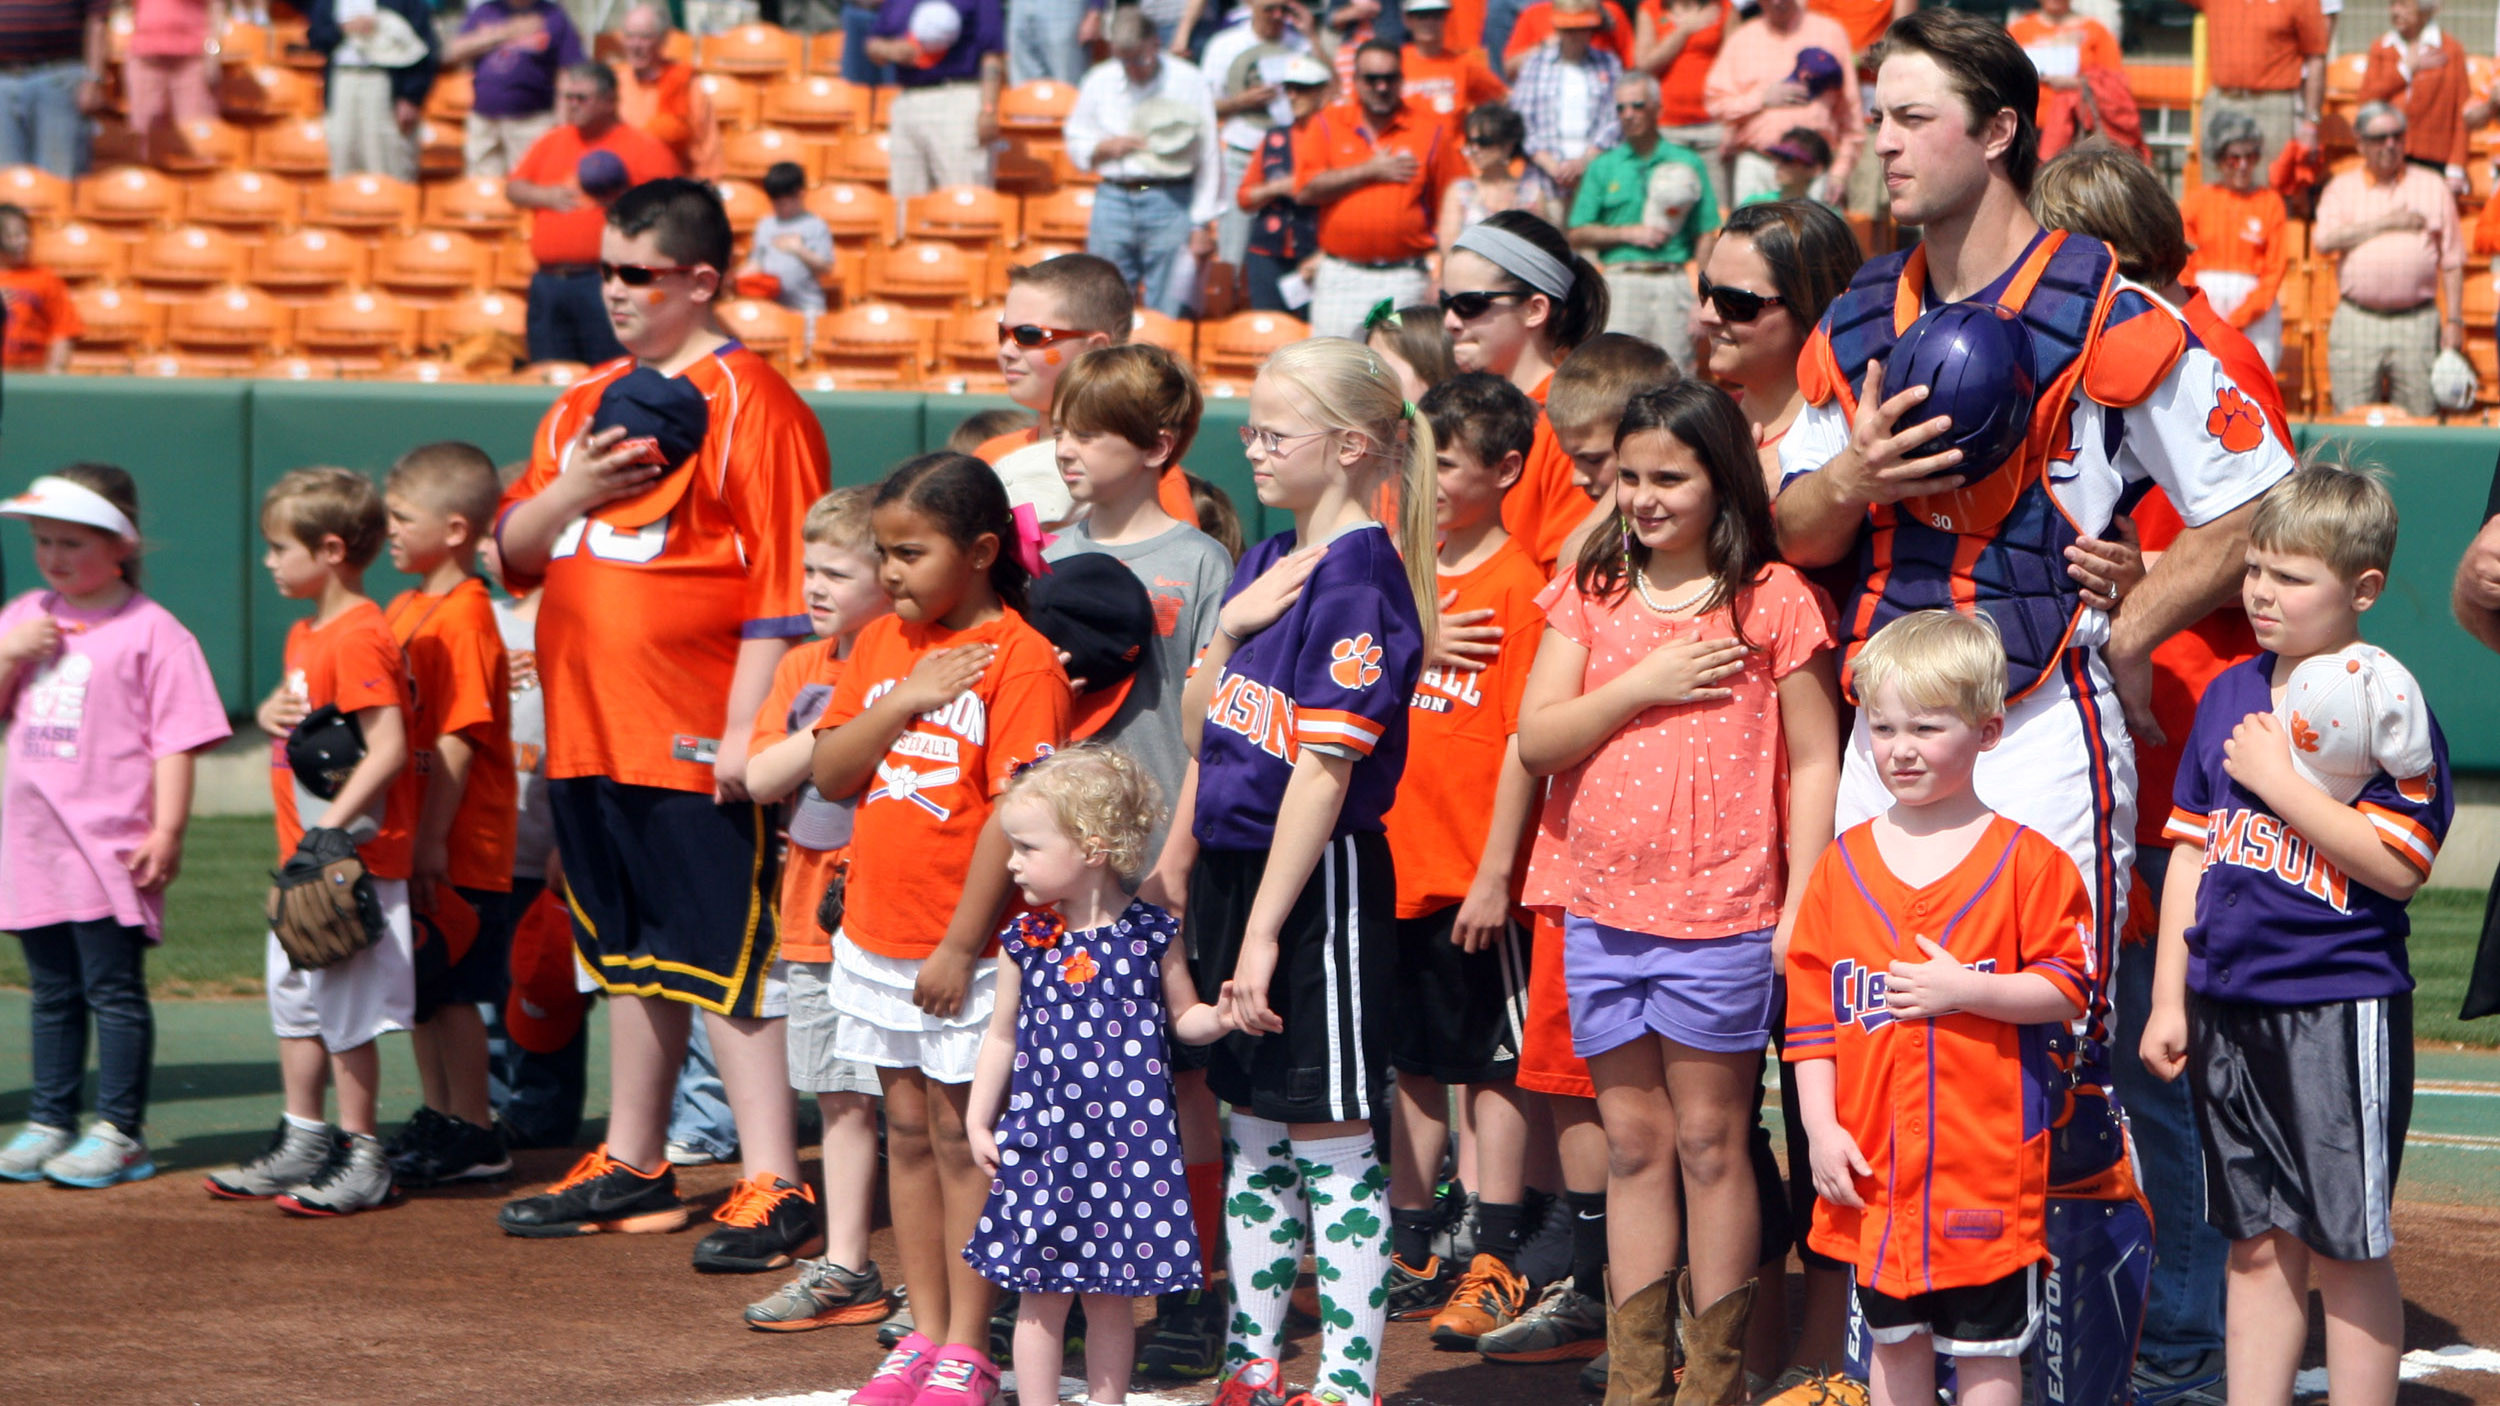 Children's Tickets Available for Sunday's Baseball Game at Academy Sports